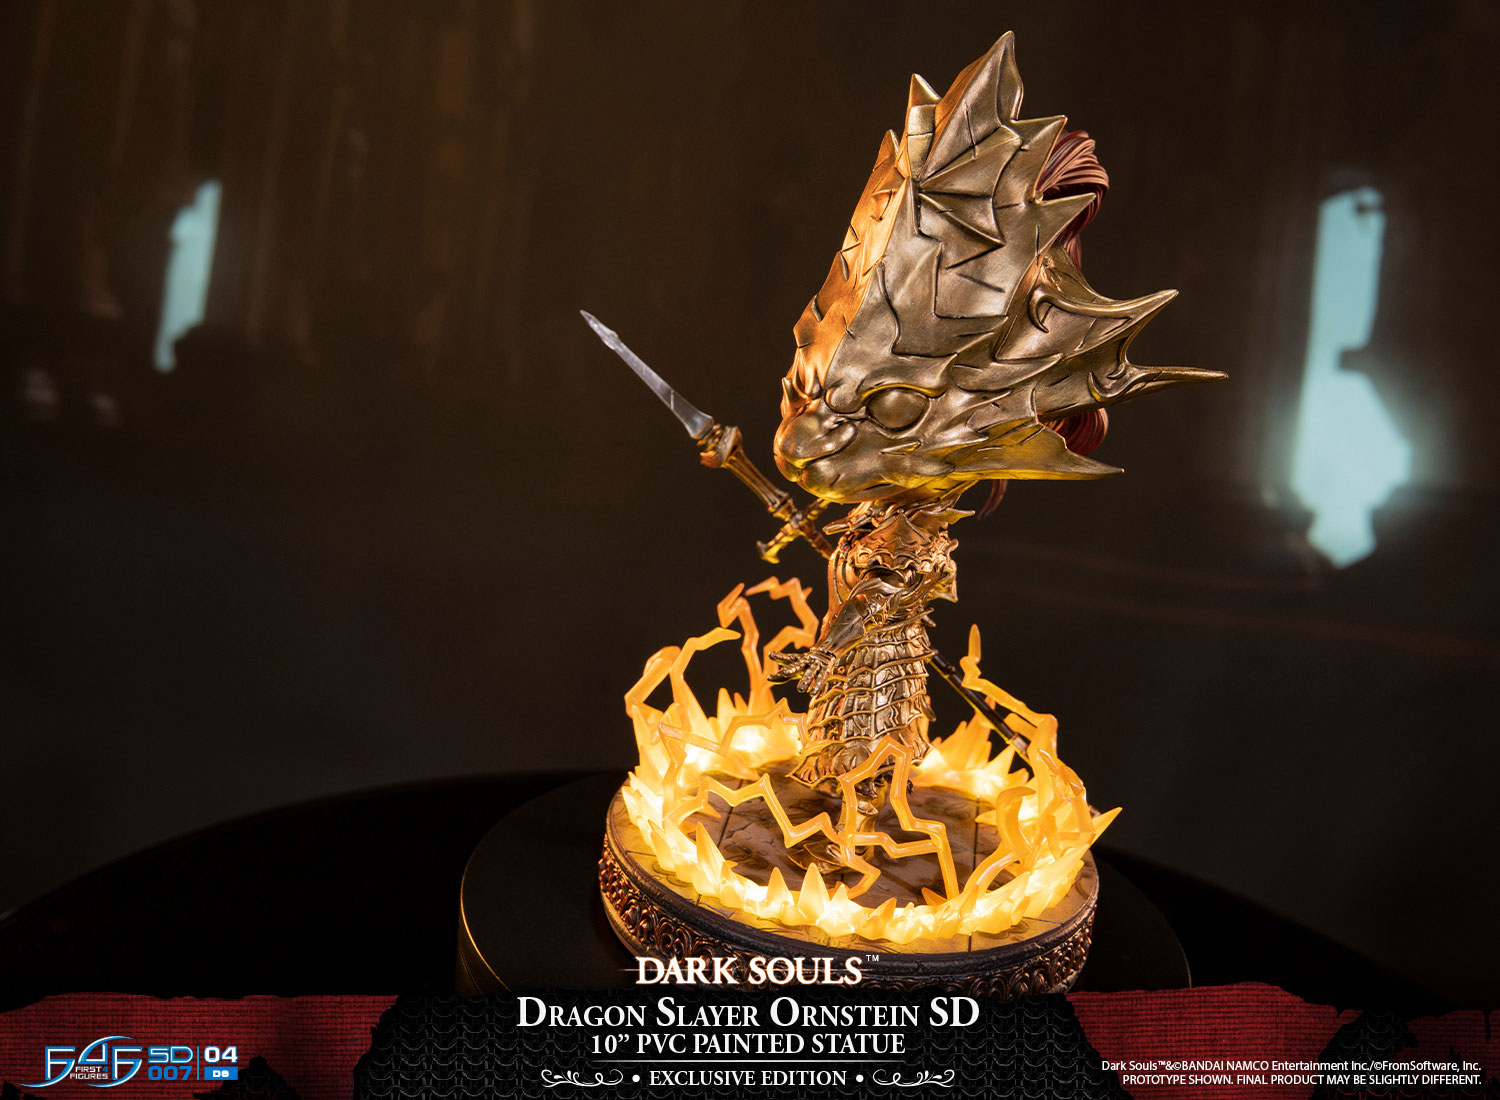 Dragon Slayer Ornstein SD (Exclusive Edition)